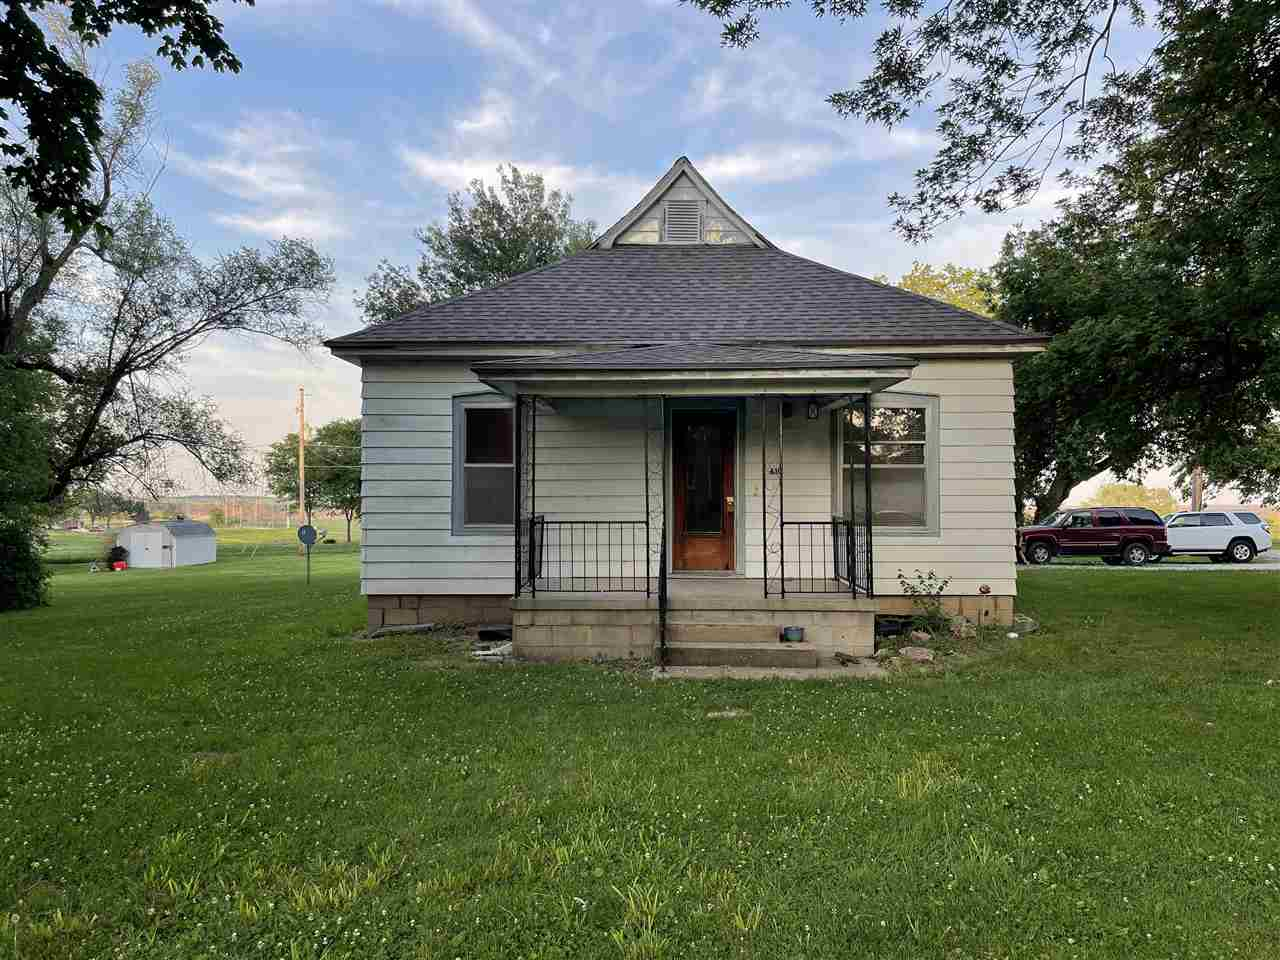 Located on the edge of town, this bungalow is full of character! With a recently updated kitchen and beautiful wood floors throughout, this 2 bedroom, 1 bath home is just what you are looking for! There is also a nice sized two car garage, and tons of yard space. Call Megan today at 785-562-7032 for your tour!